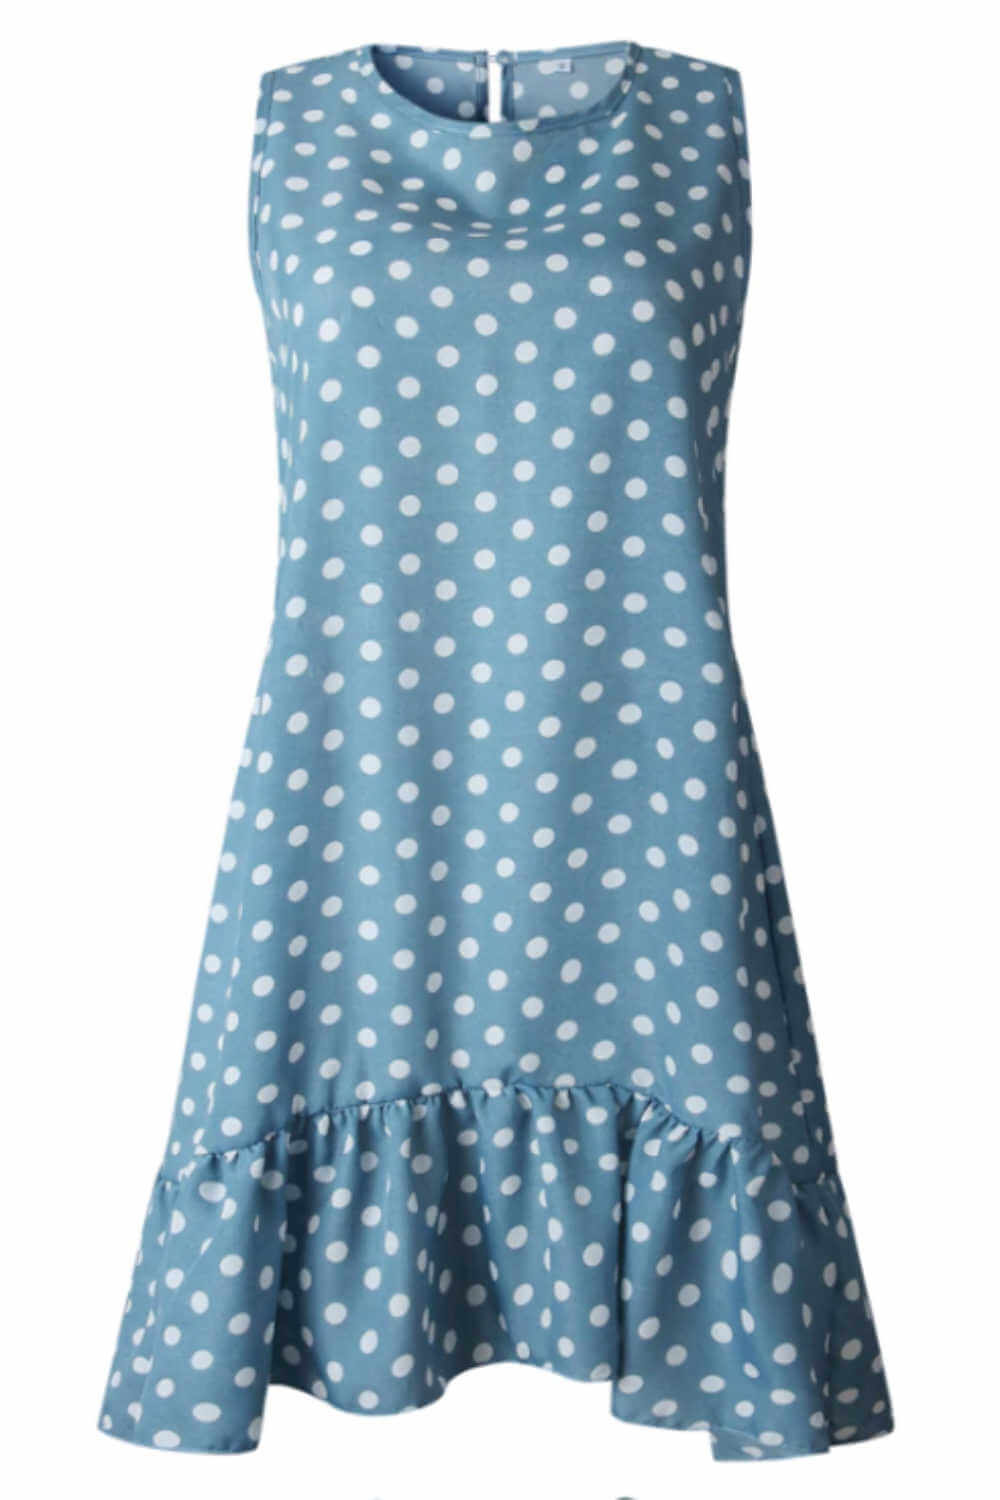 polka-dot-summer-dress-blue-white-ruffle-layers